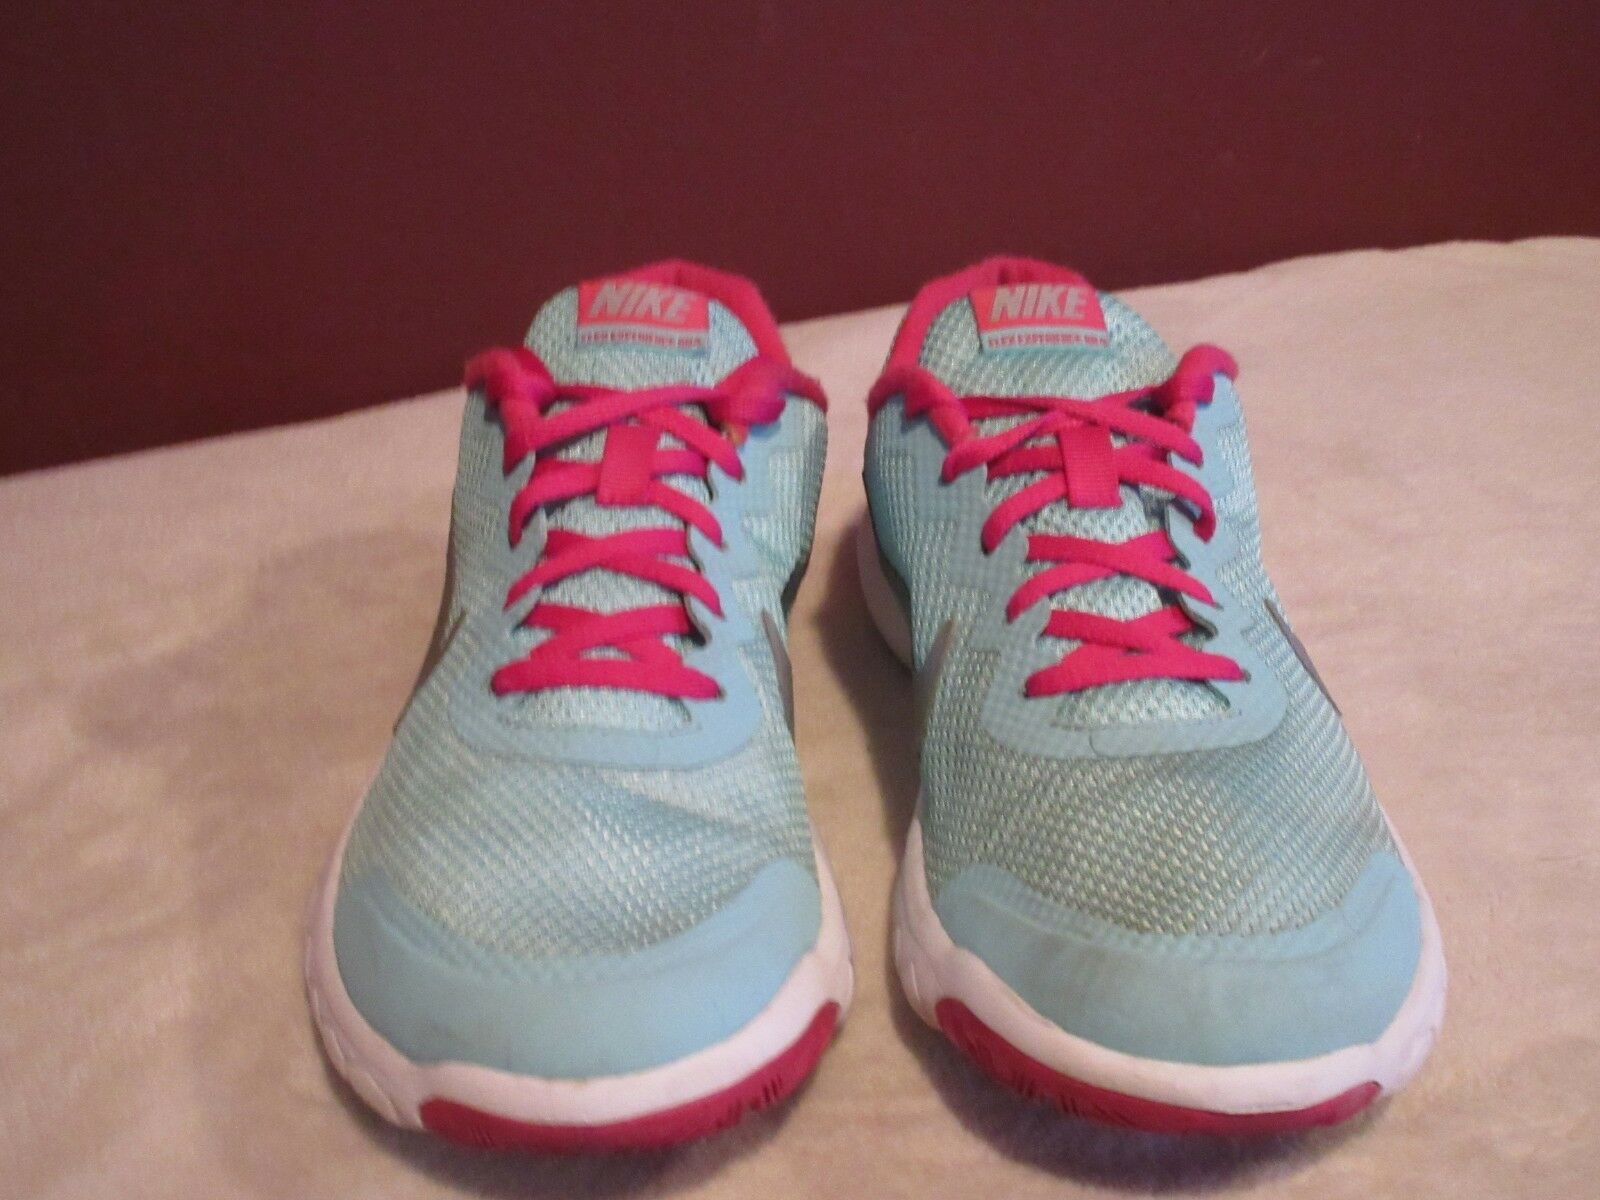 NIKE FLEX EXPERIENCE RN 4 RUNNING SNEAKERS (749818 400) SIZE 7Y